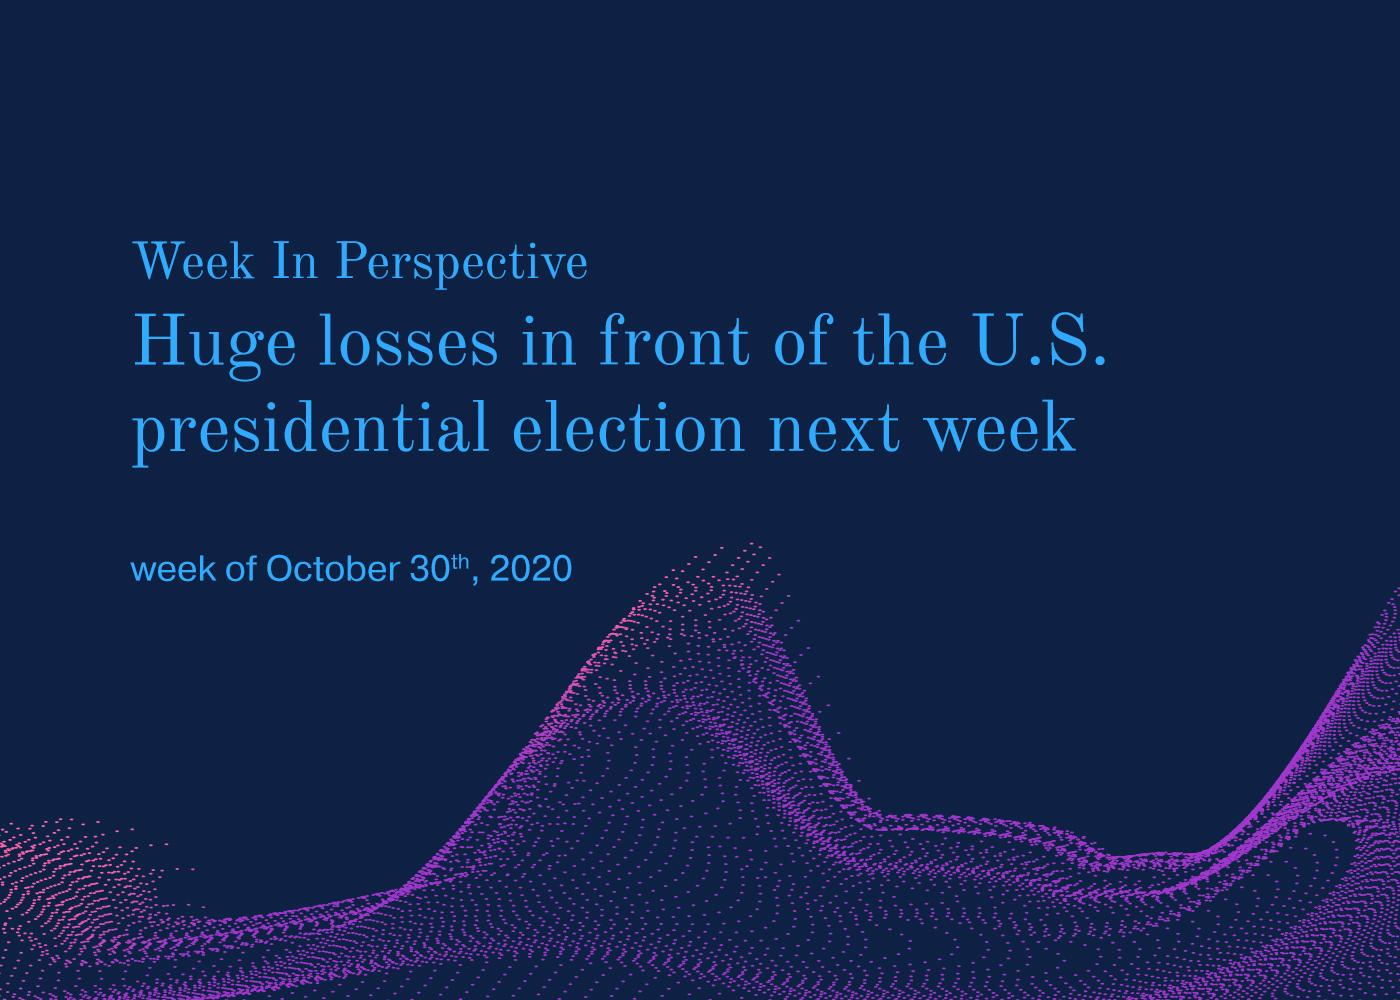 Week In Perspective October 30, 2020:  Huge losses in front of the U.S. presidential election next week Thumbnail